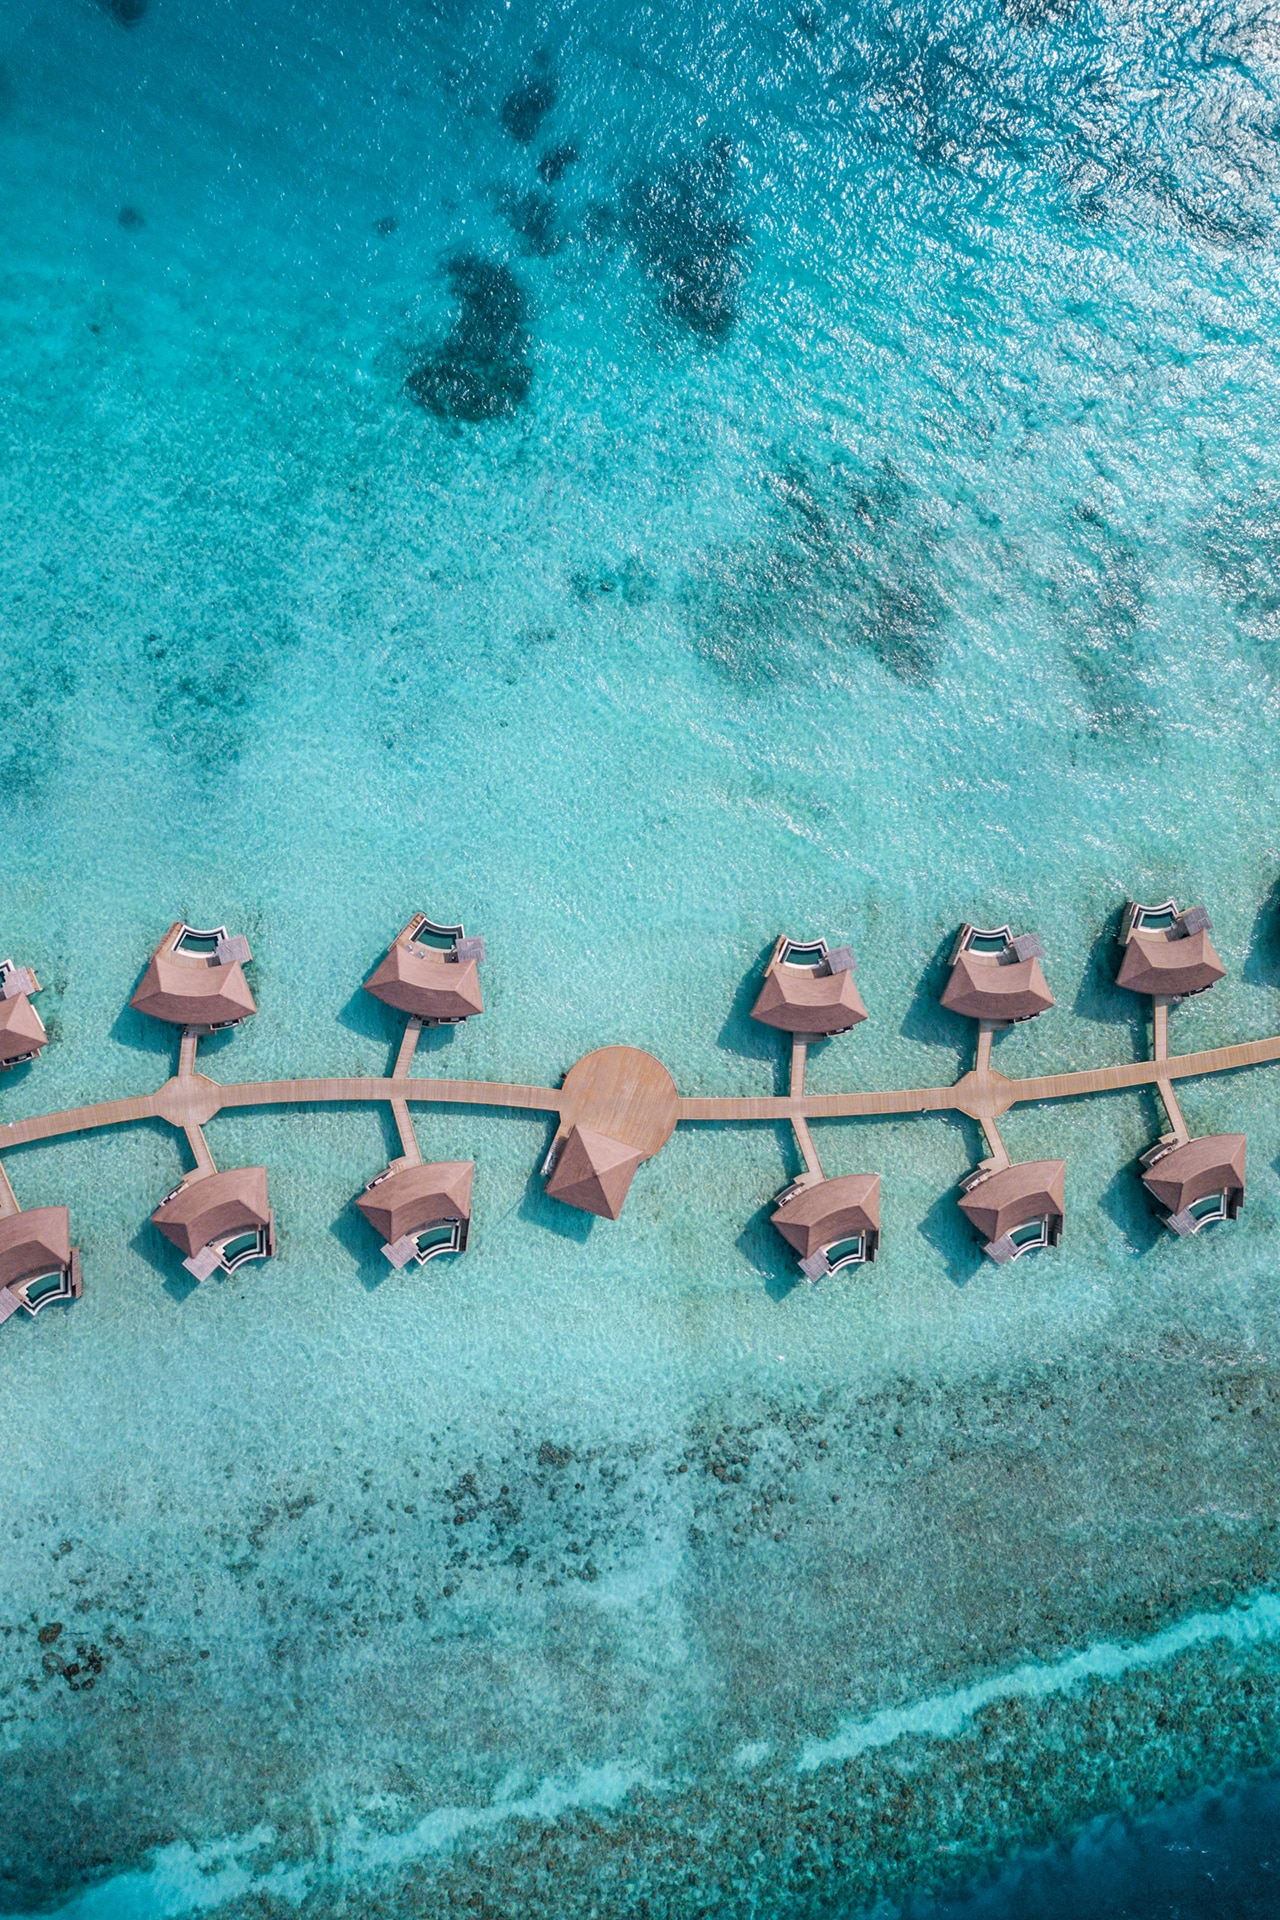 This new Maldives hotel combines luxury with sustainability